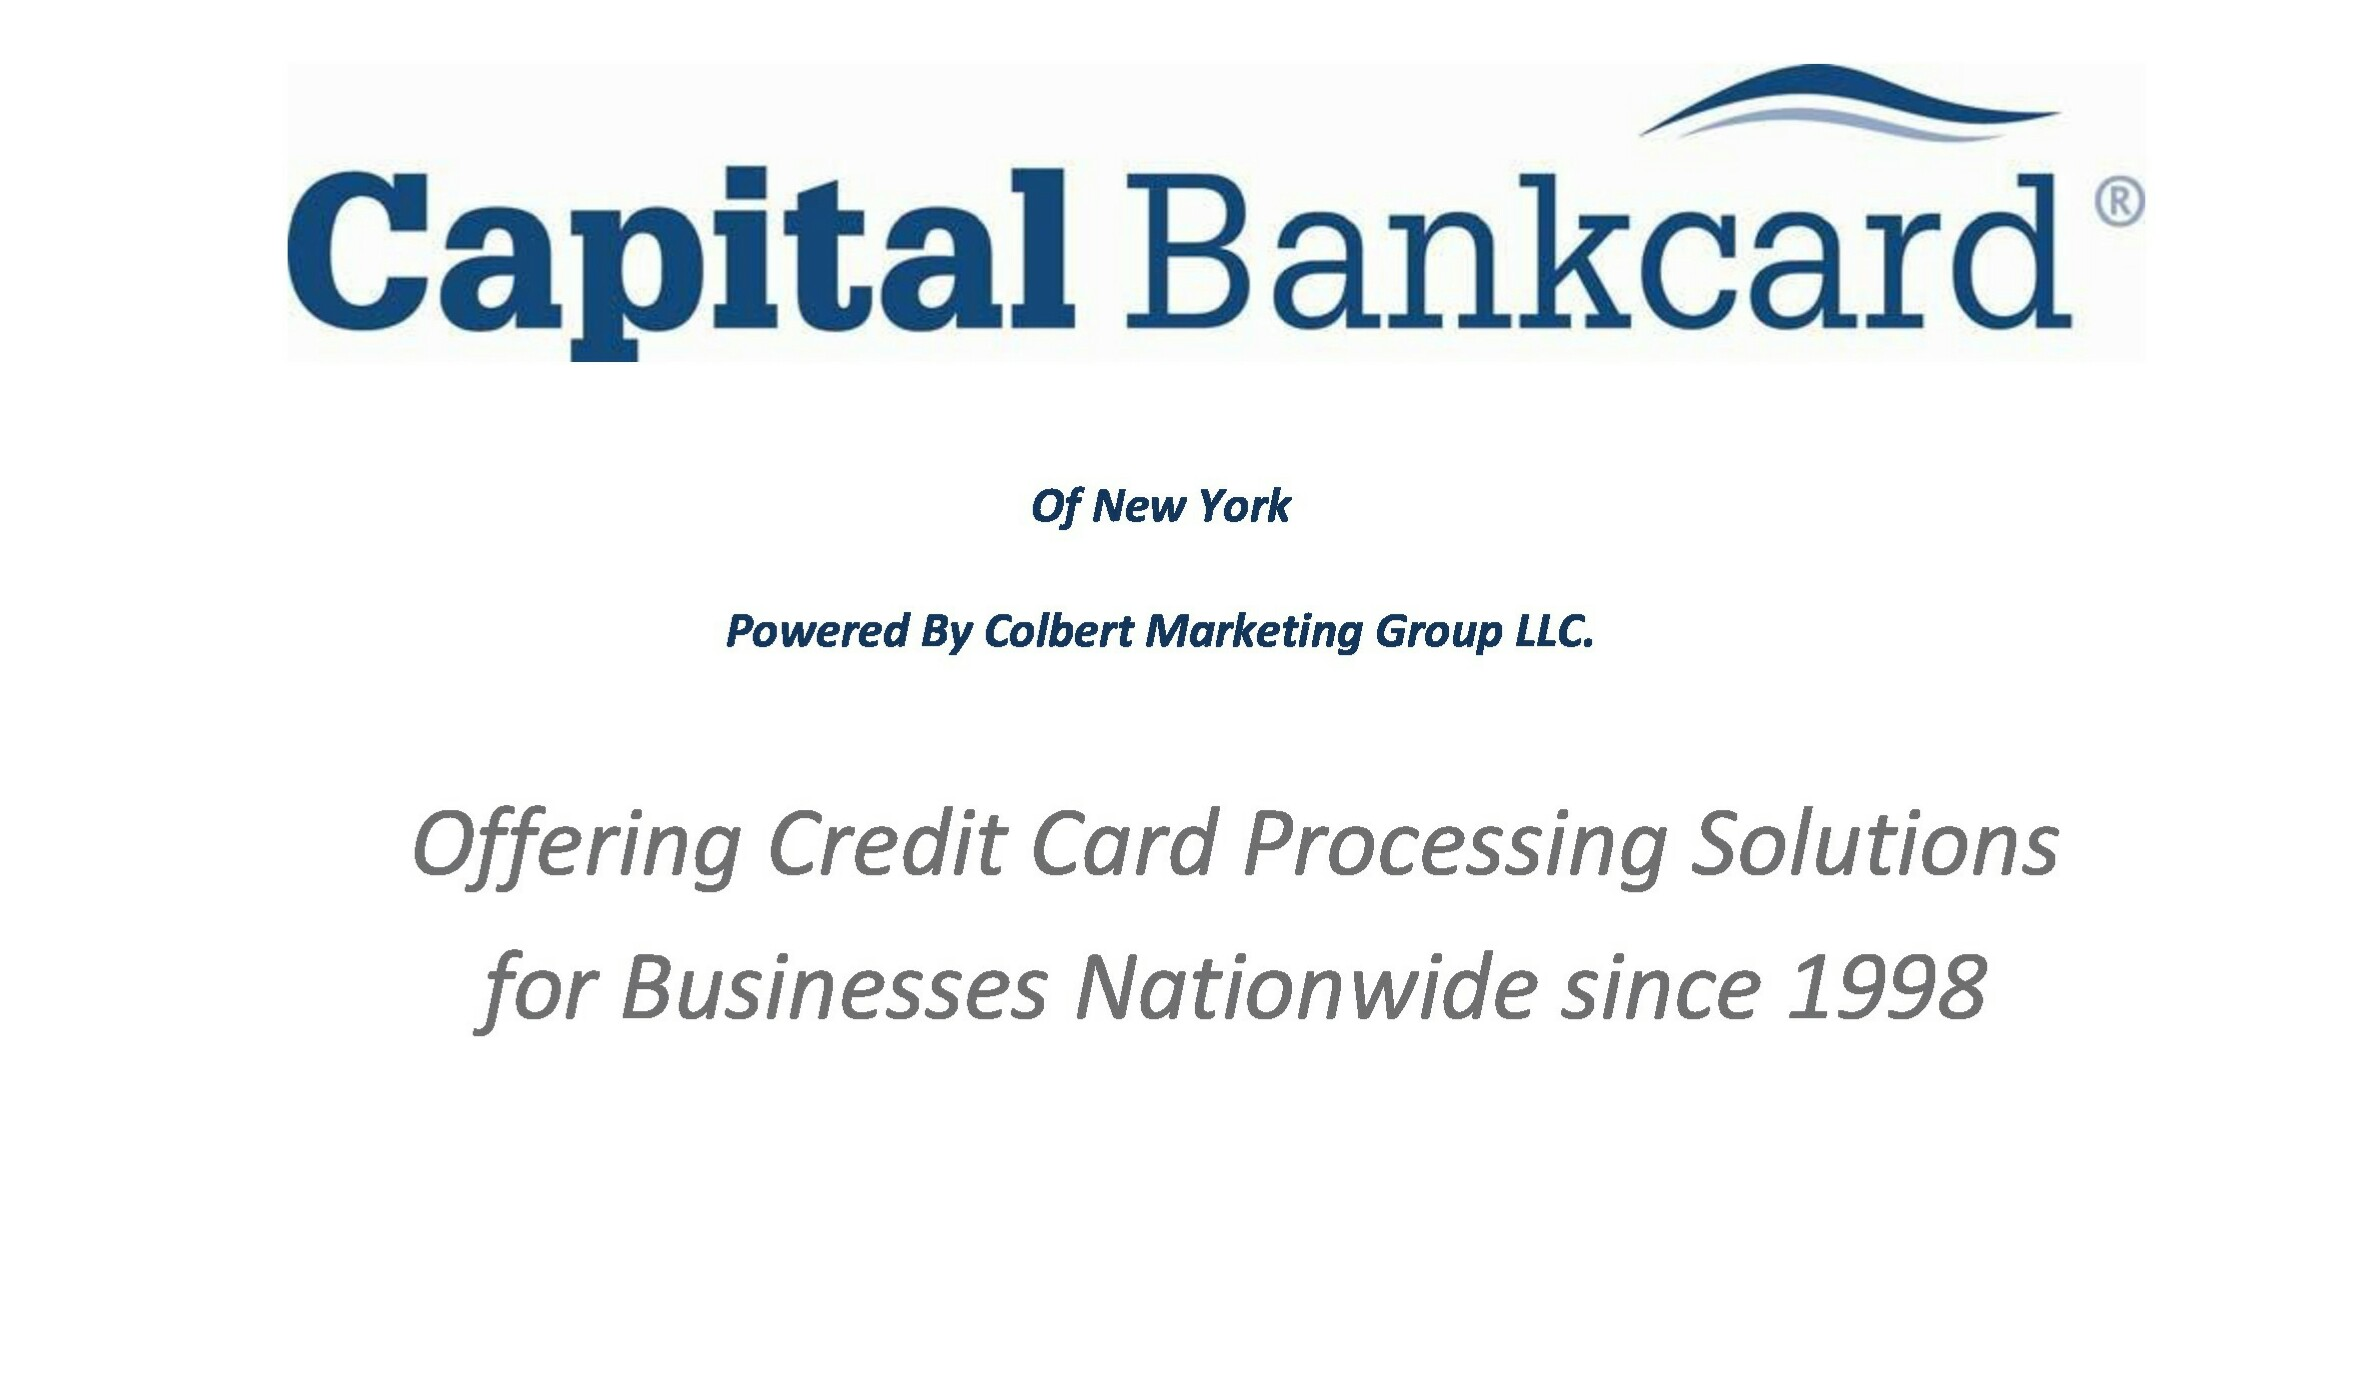 Capital Bankcard Of New York Photo